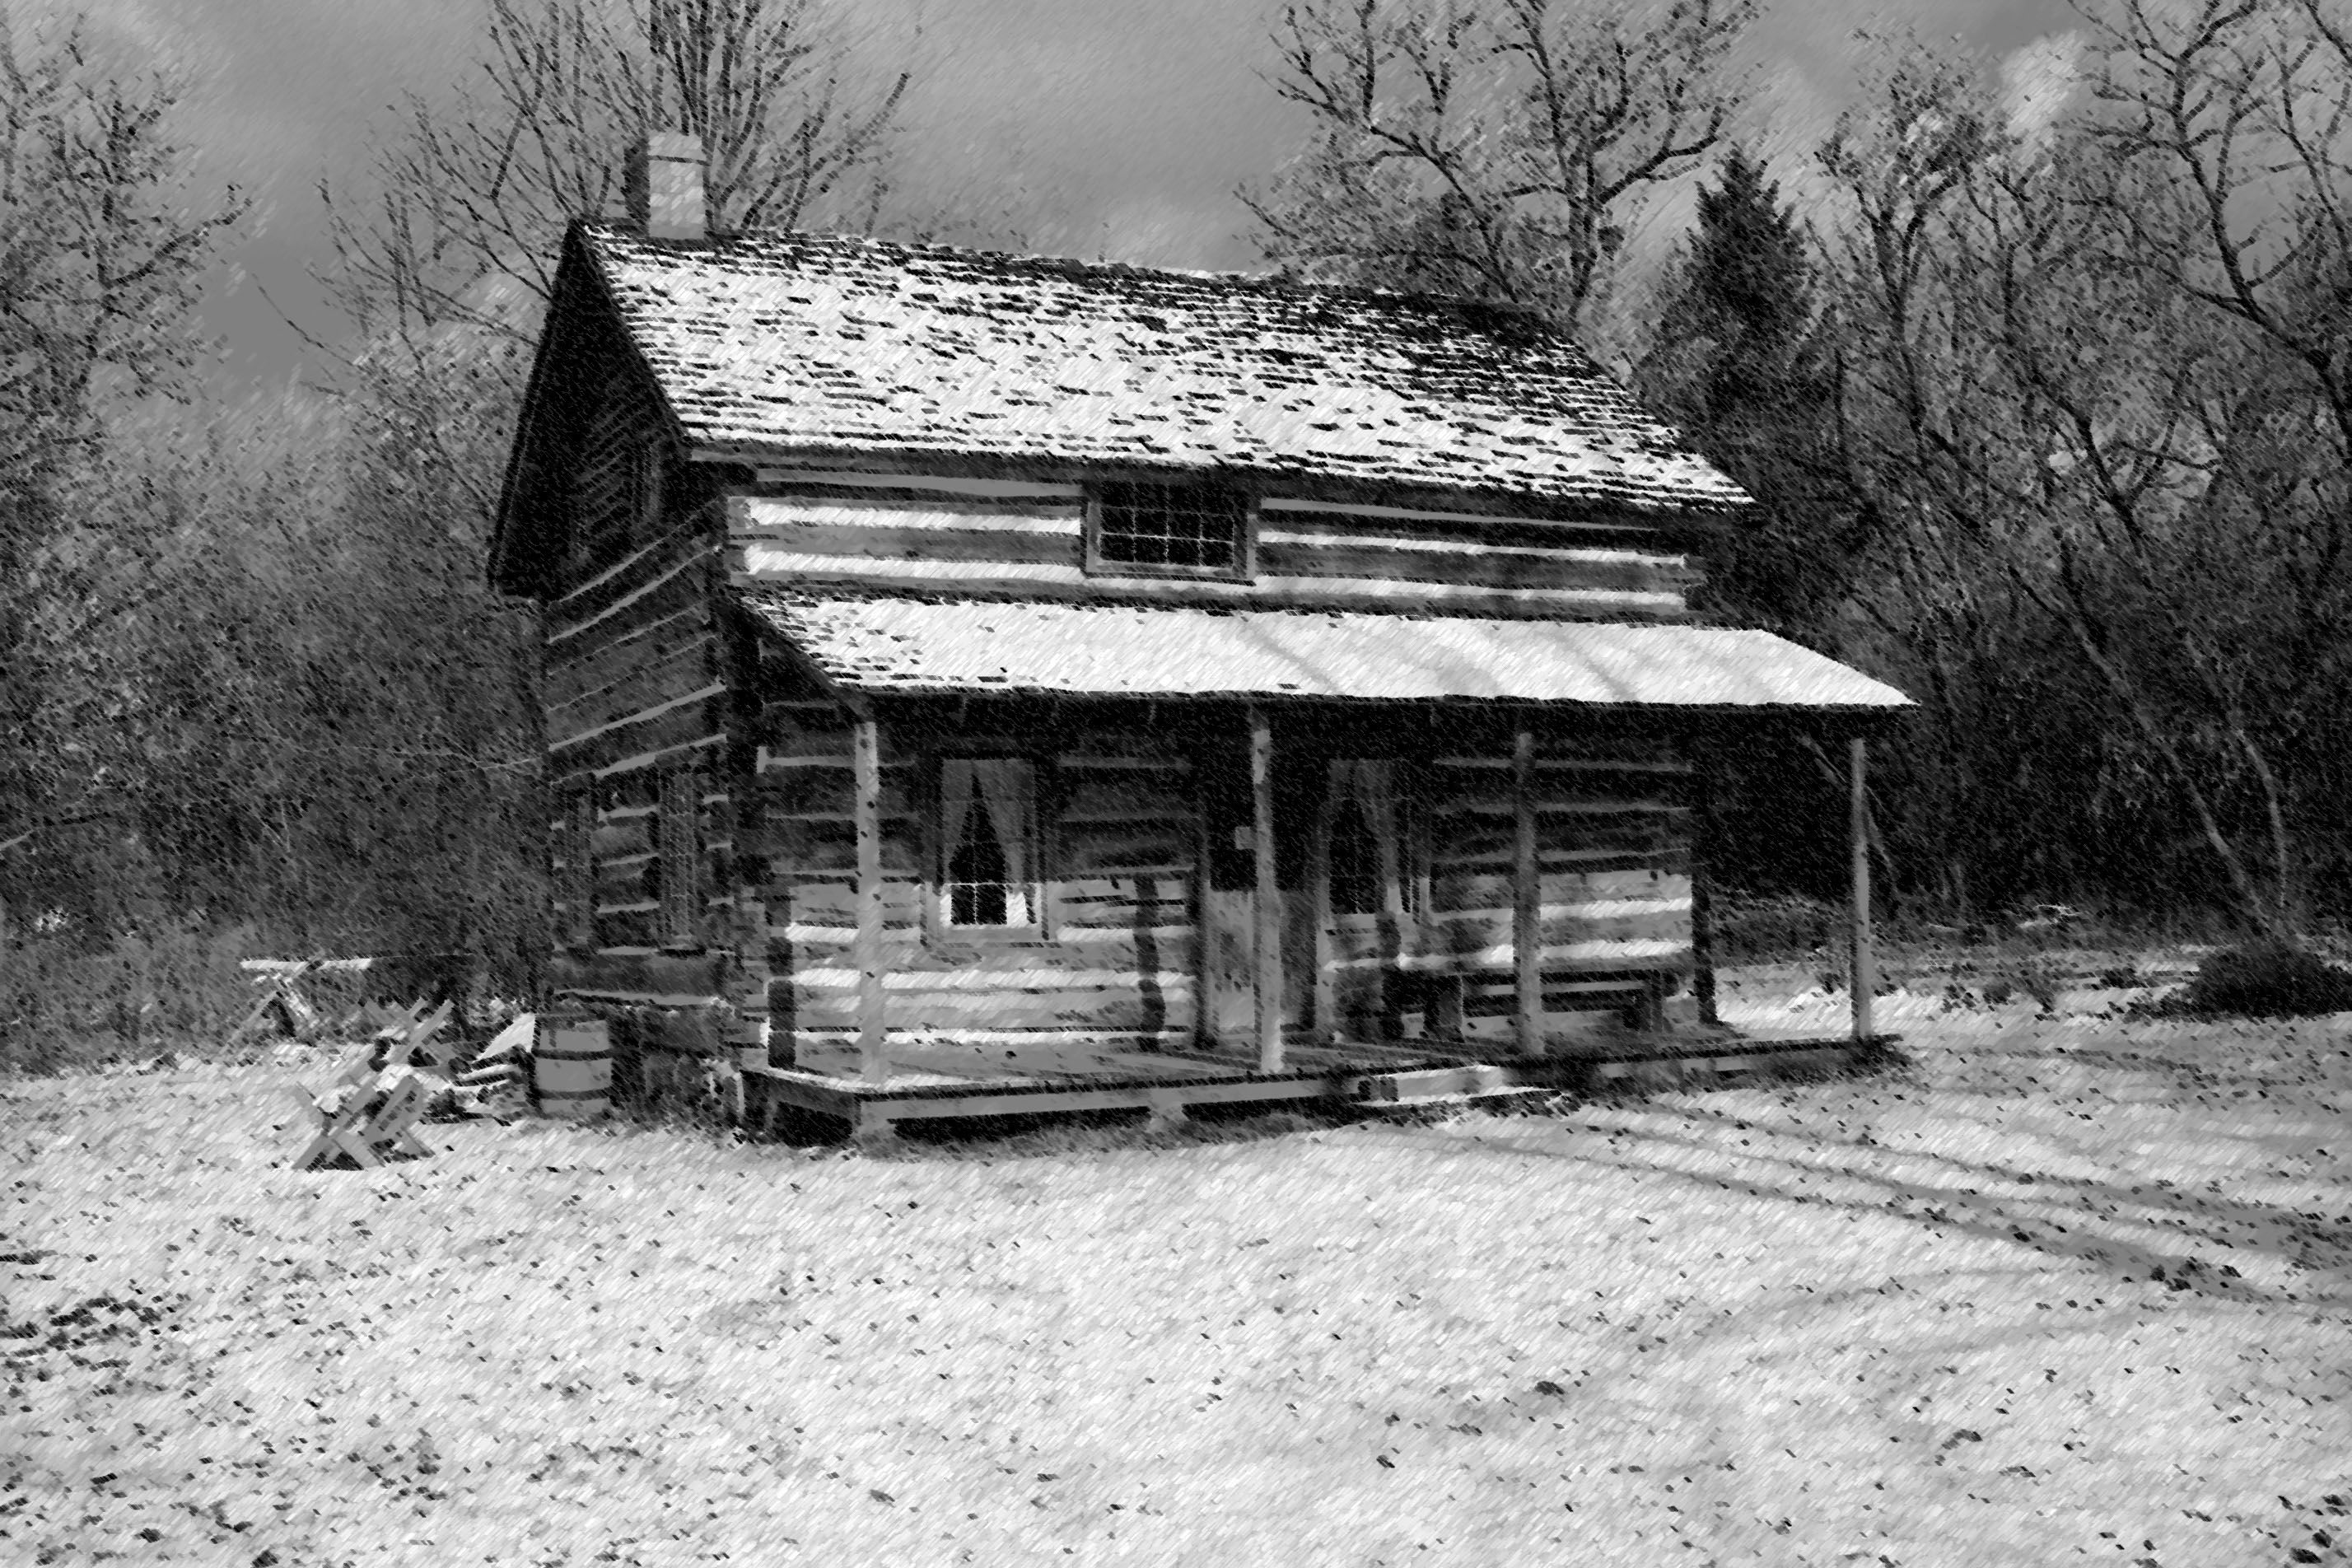 Snowy cabin growing up i would see these broken down Texas cabins in the woods